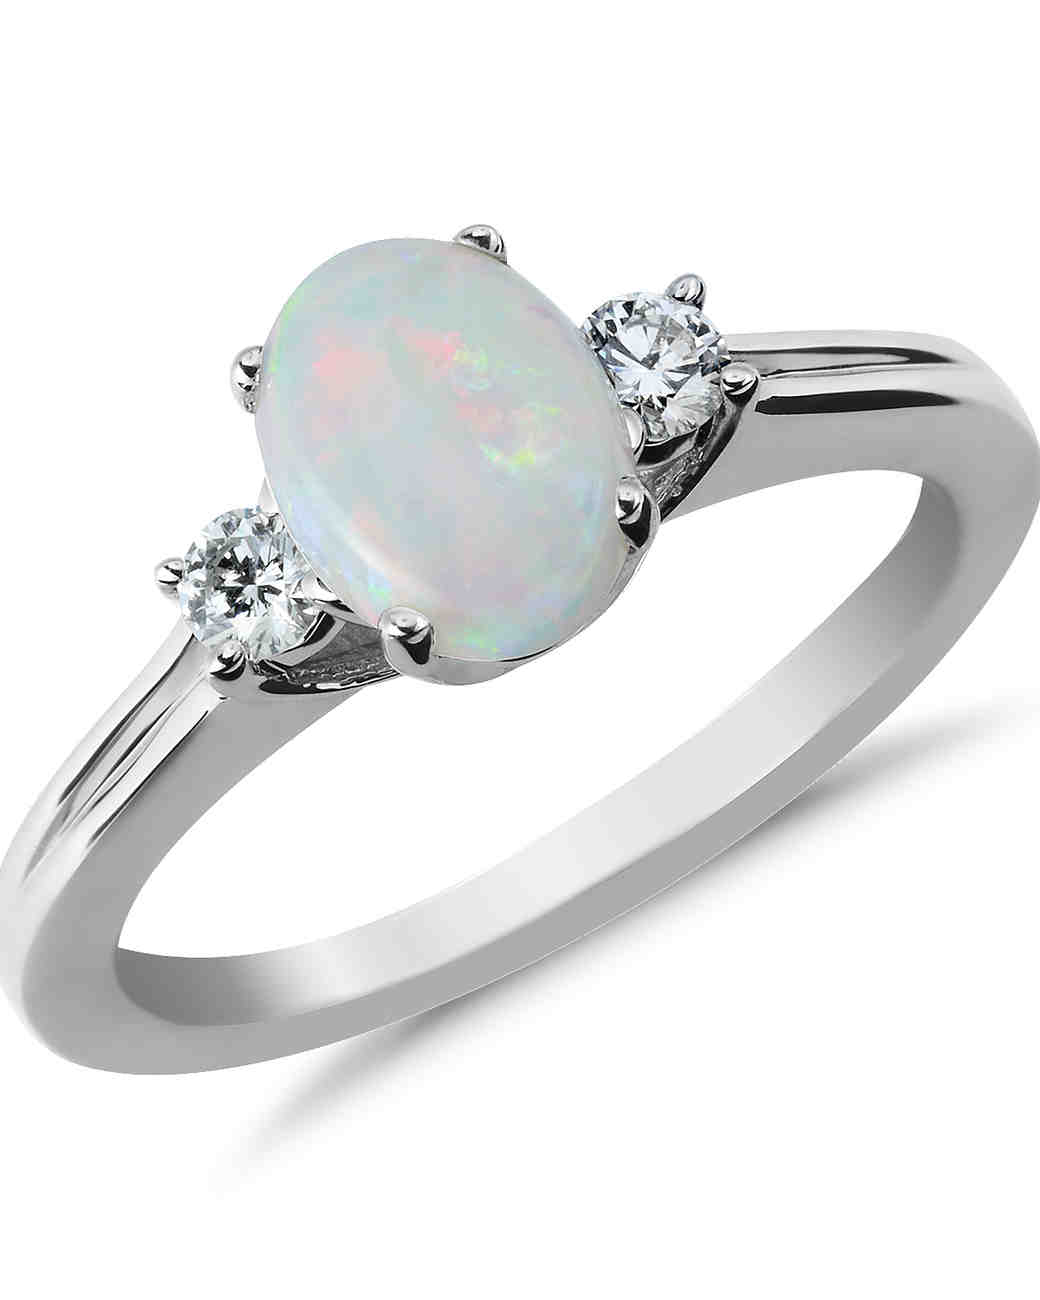 diamond z ring exquisite natural rings j oval jewelry fashion victorian at and engagement id sale opal large for sterling gold